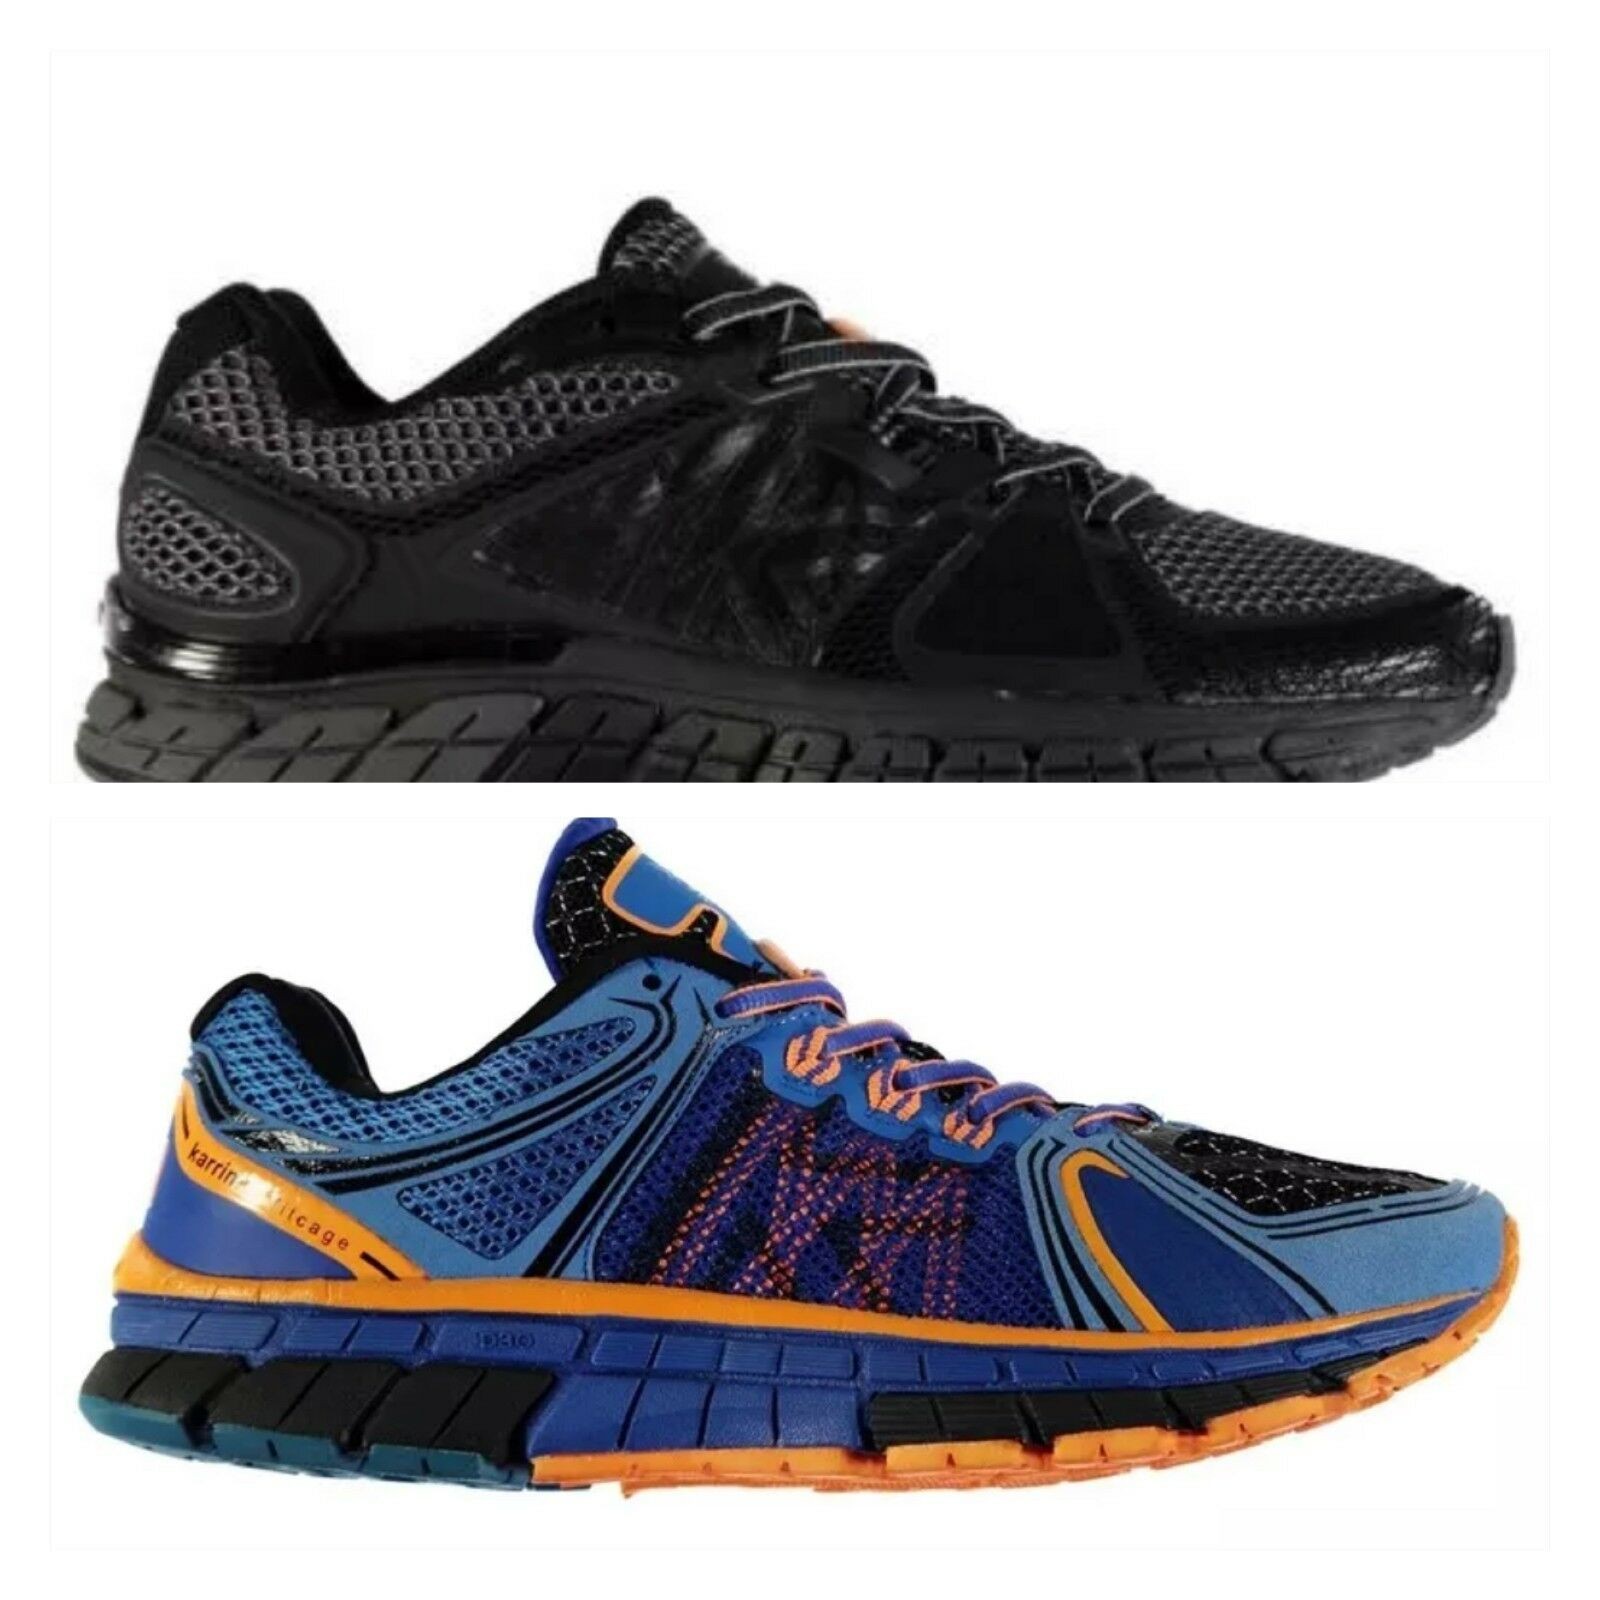 Mens Karrimor D30 Stability Running Shoes Black Silver Lace Up Trainers UK 6